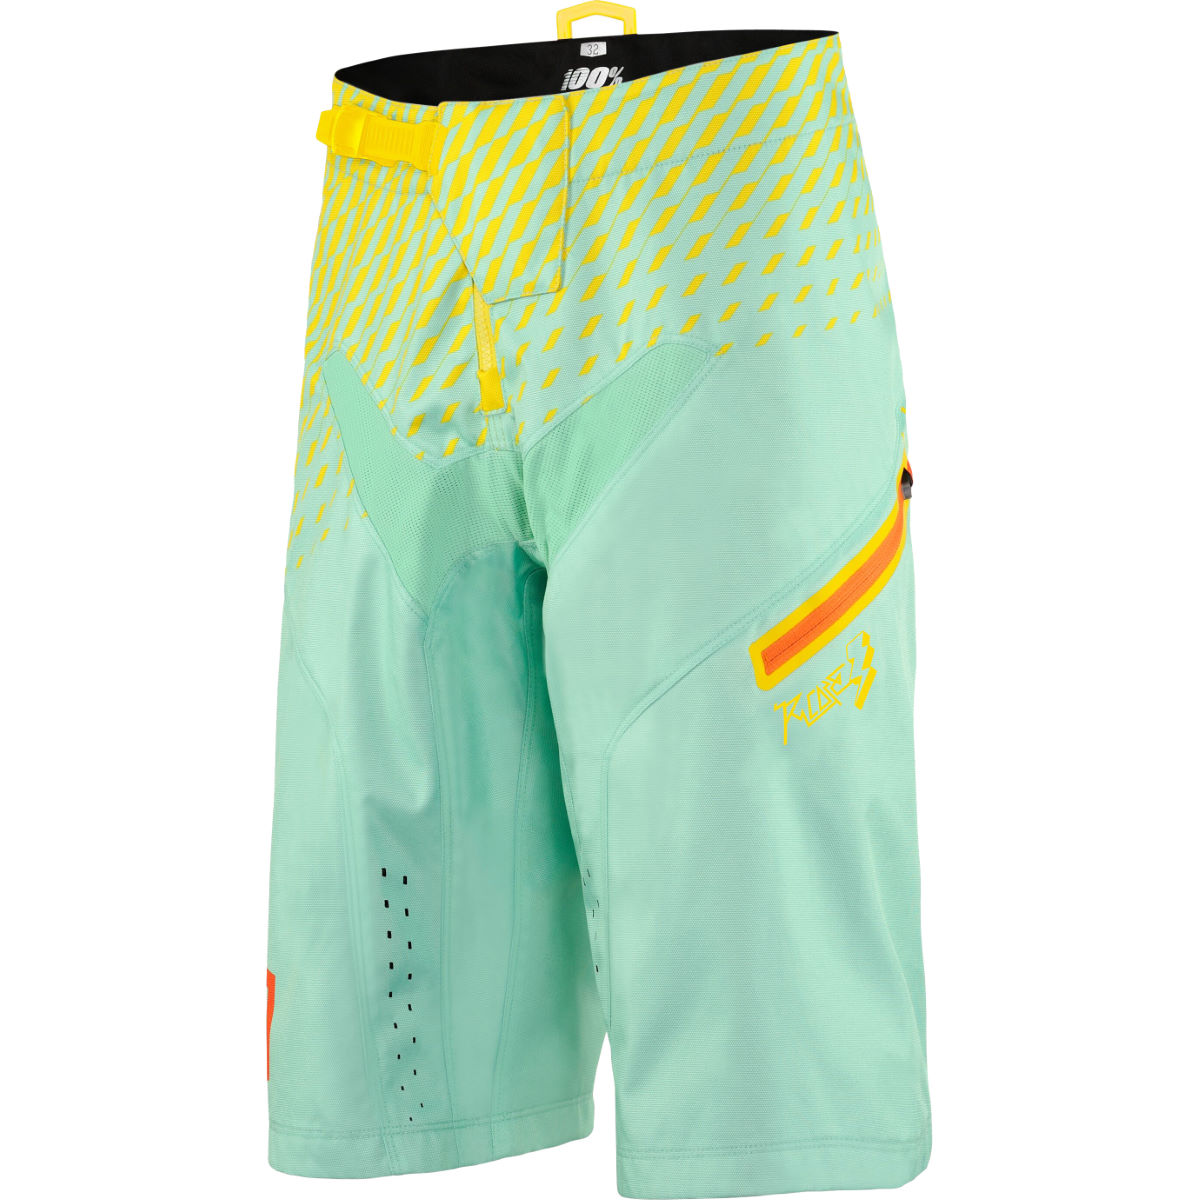 100% R-Core Supra DH Shorts - 30 Seafoam | Baggy Cycling Shorts